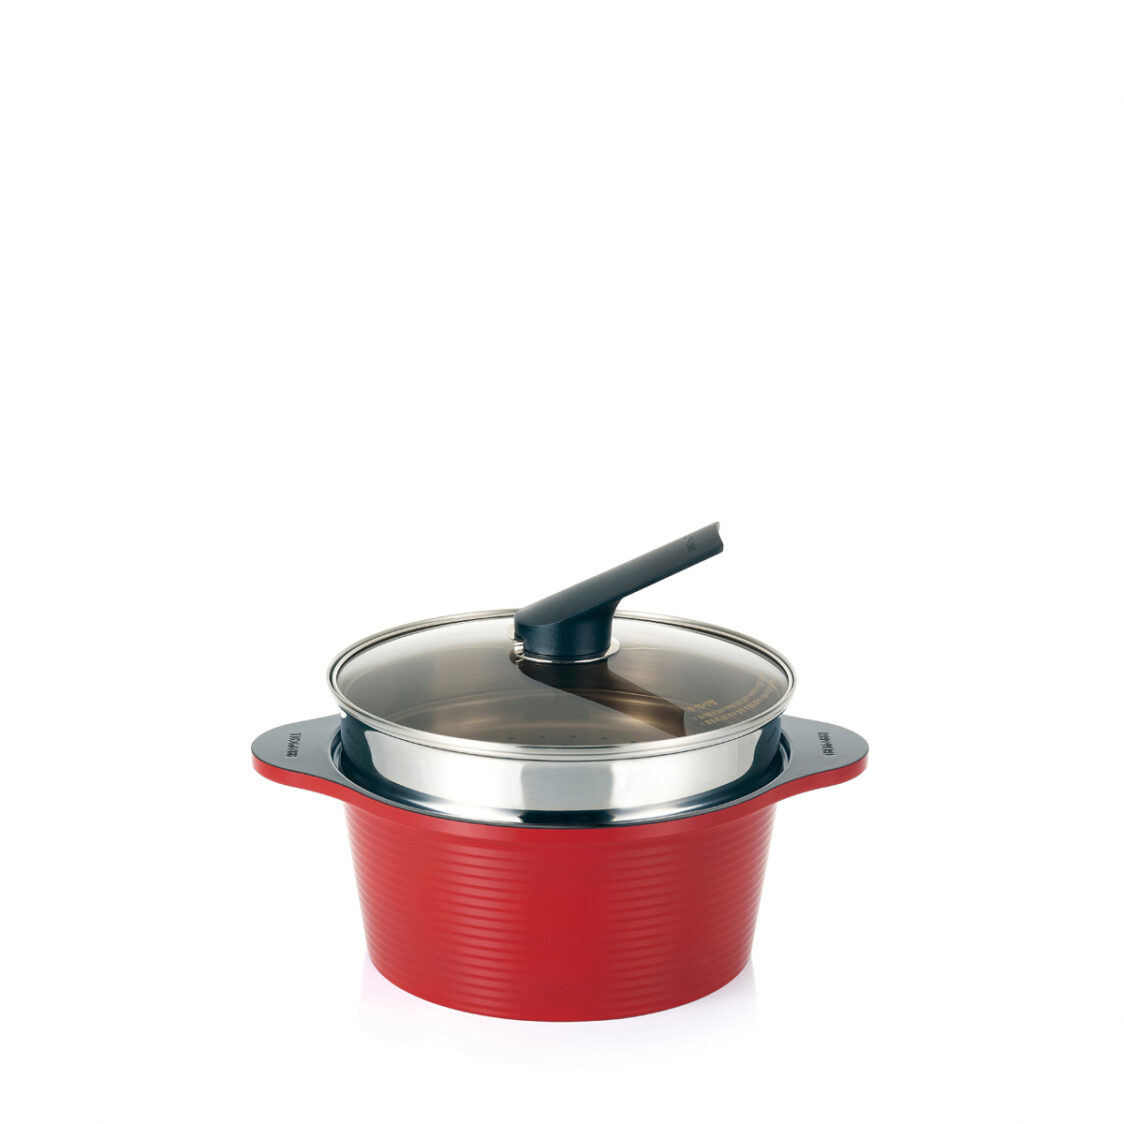 Happycall 24cm IH Alumite High Pure Ceramic Die Cast Stock Pot With Steamer Set Made In Korea 3900-2228